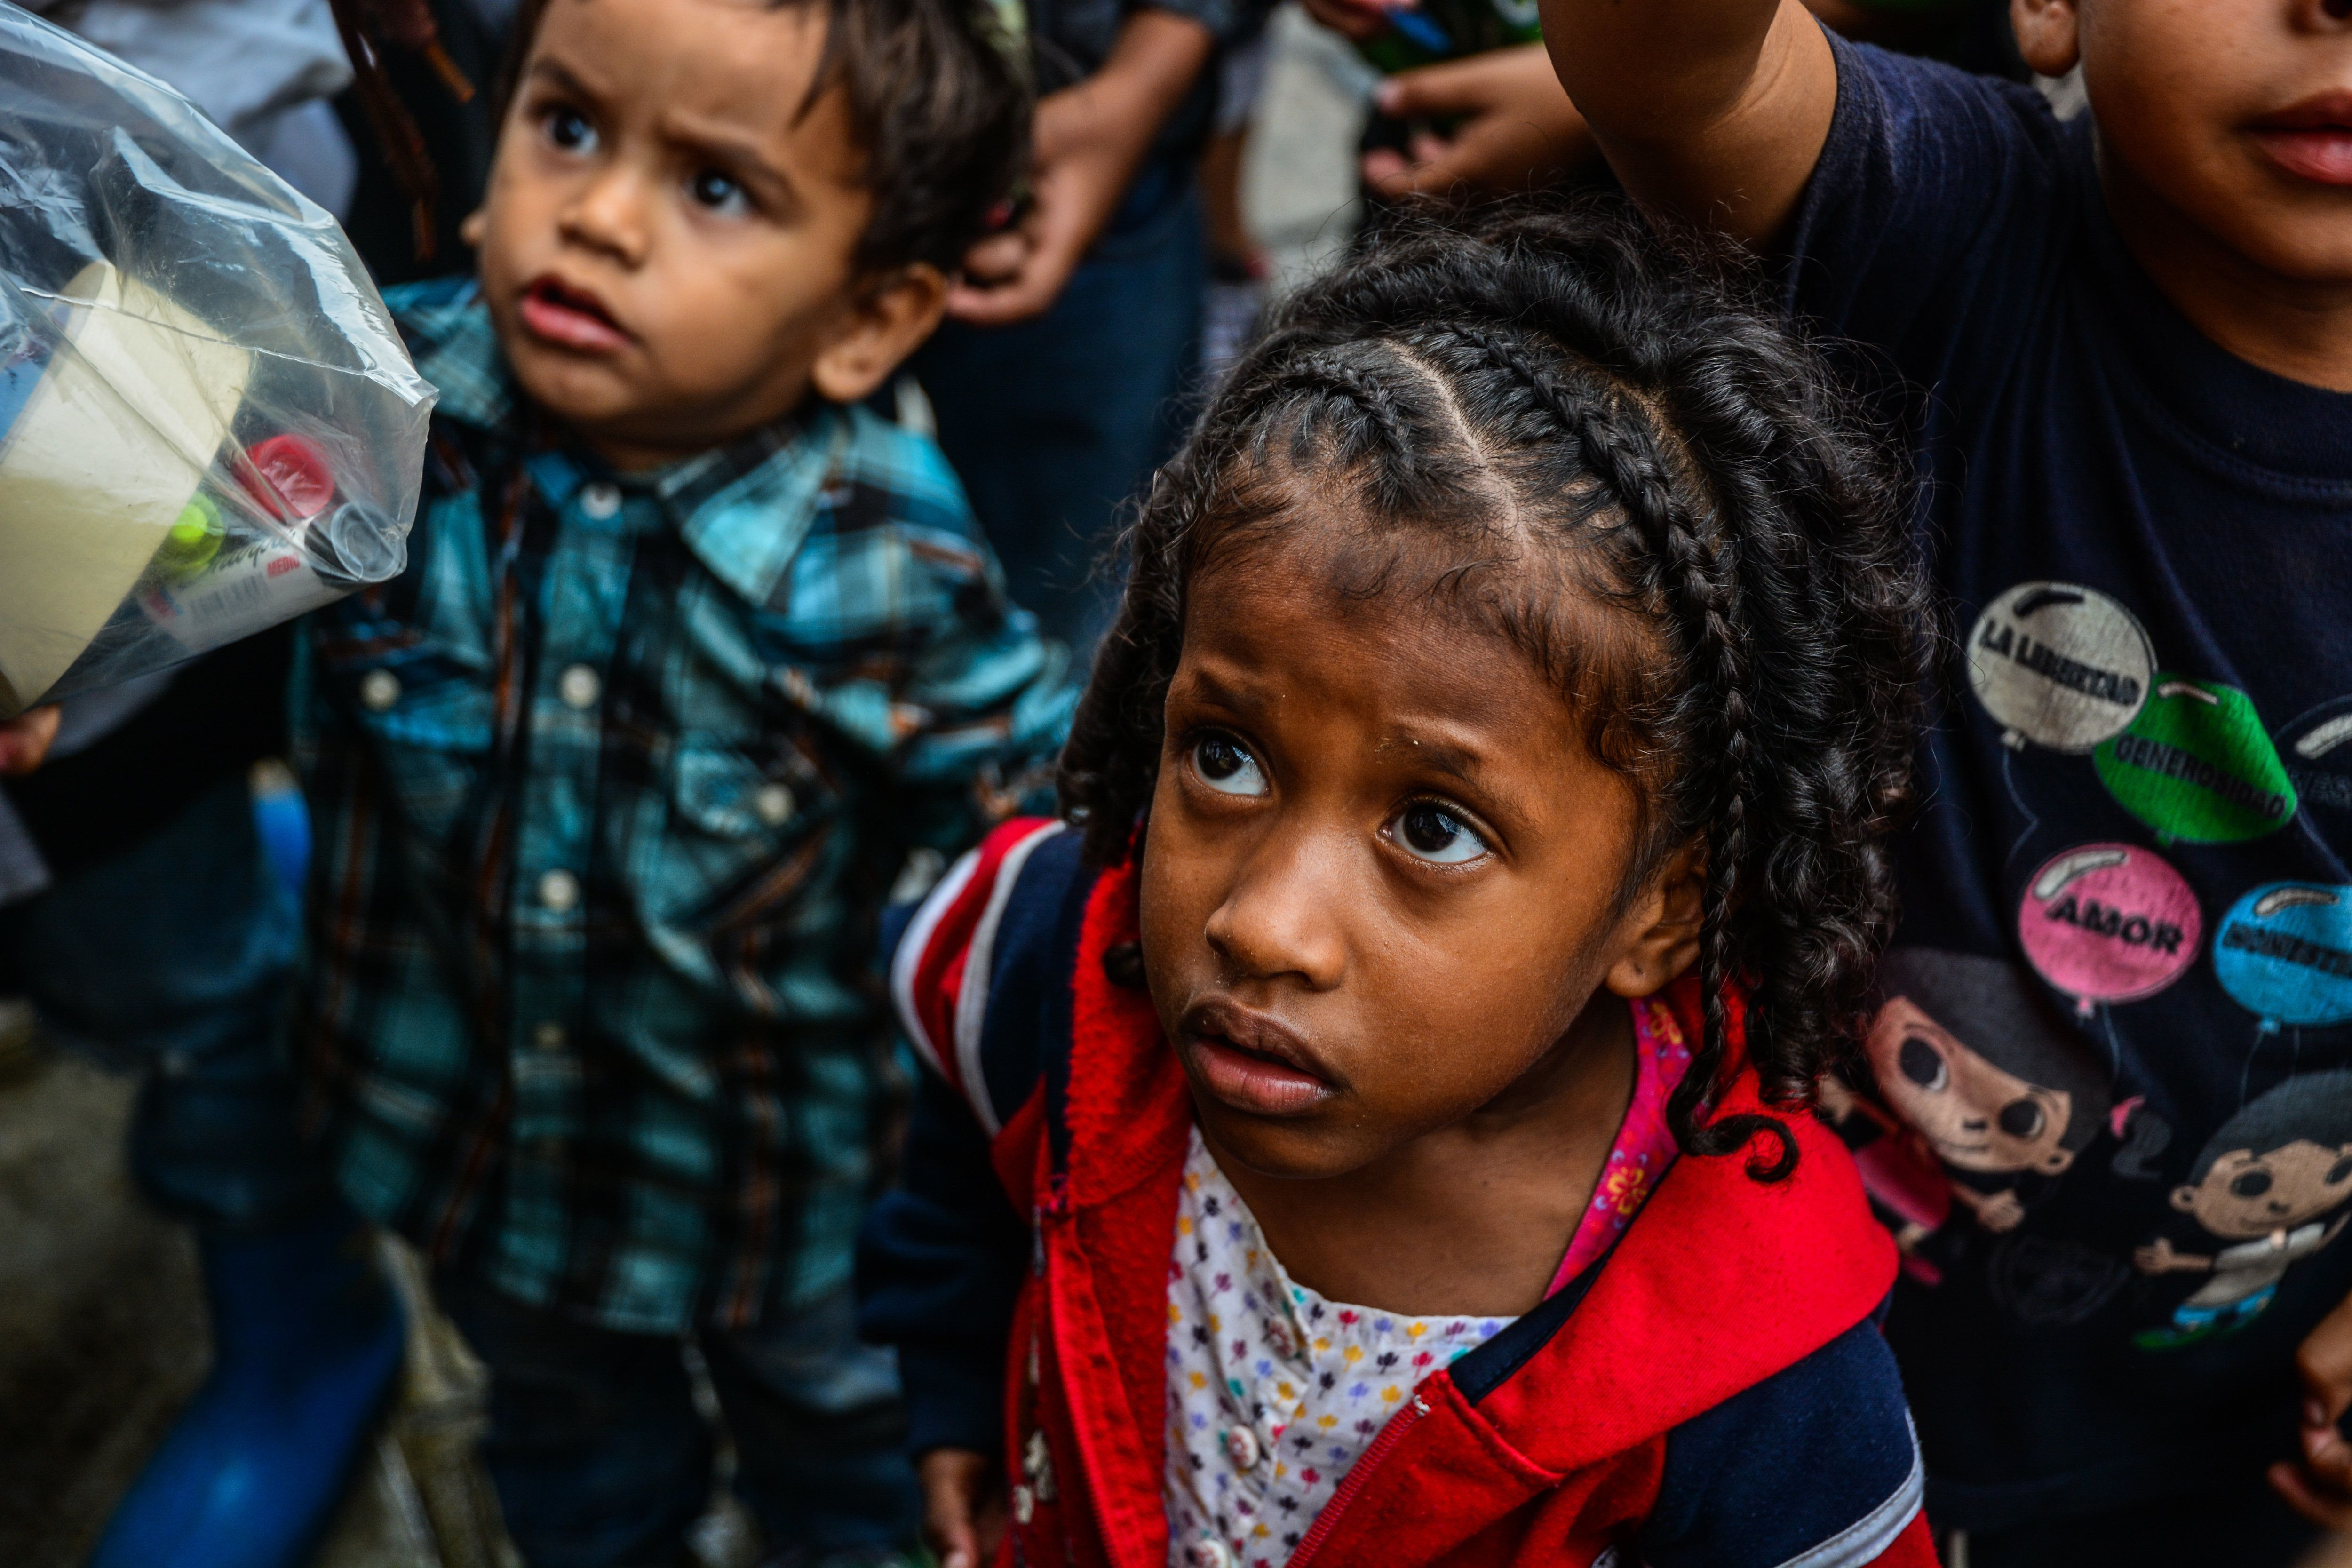 CARACAS, MIRANDA, VENEZUELA - 2017/11/05: Children wait for food in soup kitchens that provides free food on  the streets to counteract the food crisis Venezuela is going through. The country is experiencing its worst humanitarian crisis in years. (Photo by Roman Camacho/SOPA Images/LightRocket via Getty Images)